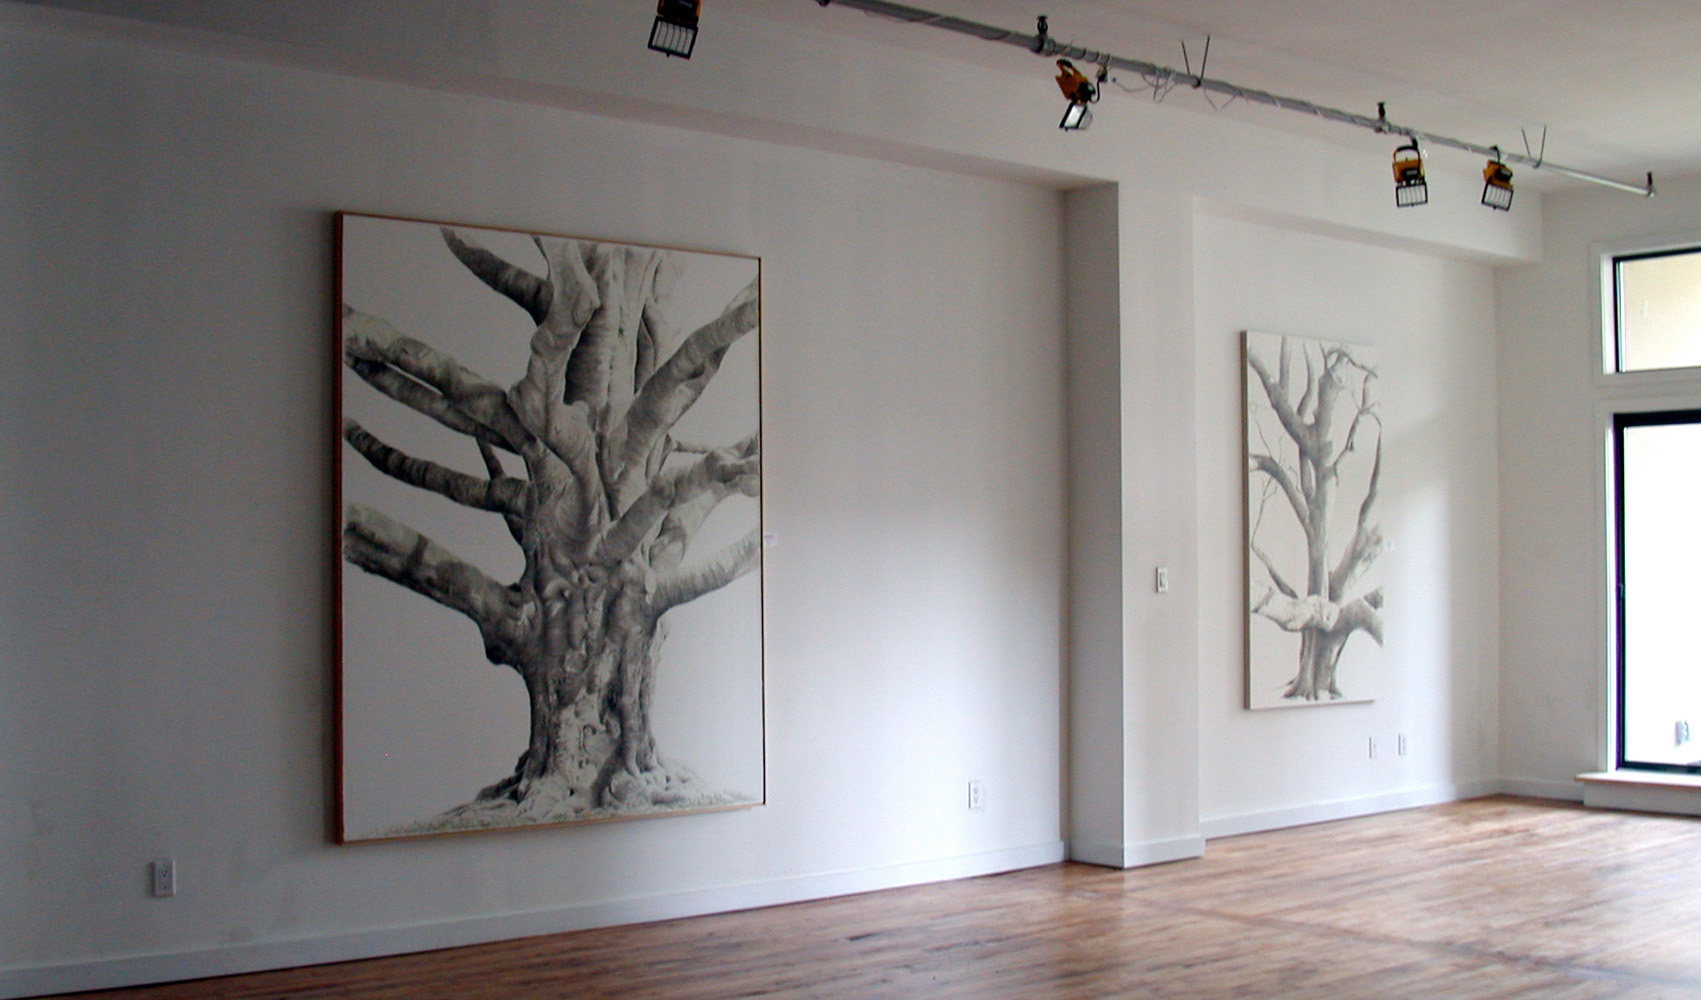 GREAT COPPER BEACH and GUMBO LIMBO, 2009, Gallery, Brooklyn NY